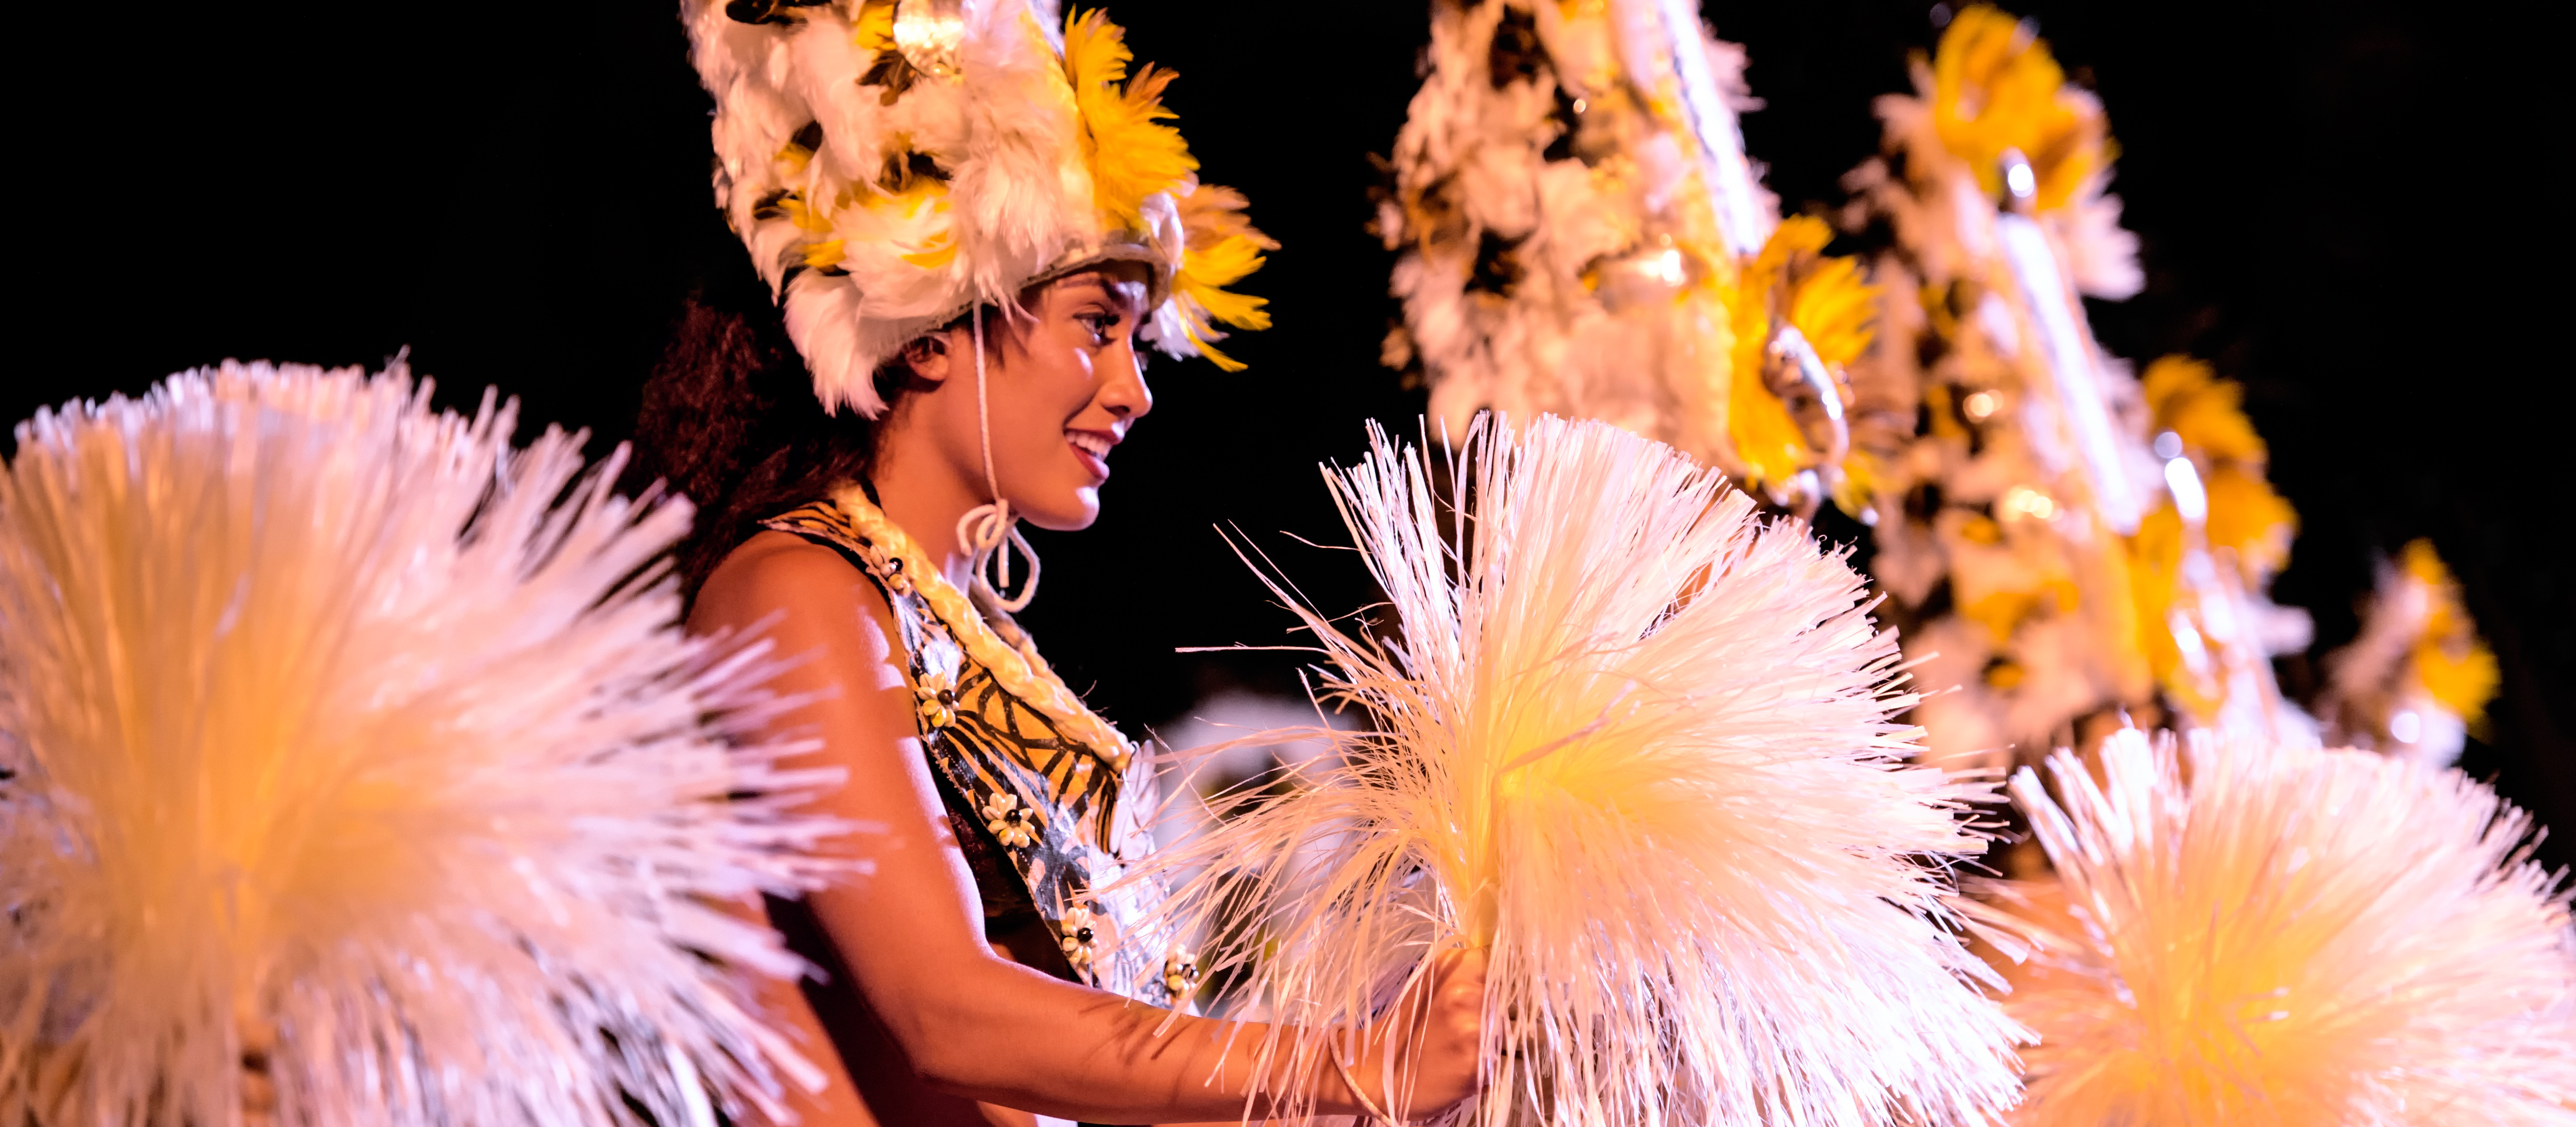 A female dancer holding grassy pom-poms and wearing traditional Hawaiian dress, including a hat made of feathers, performs a Hawaiian dance at the Ka Wa'a Luau.